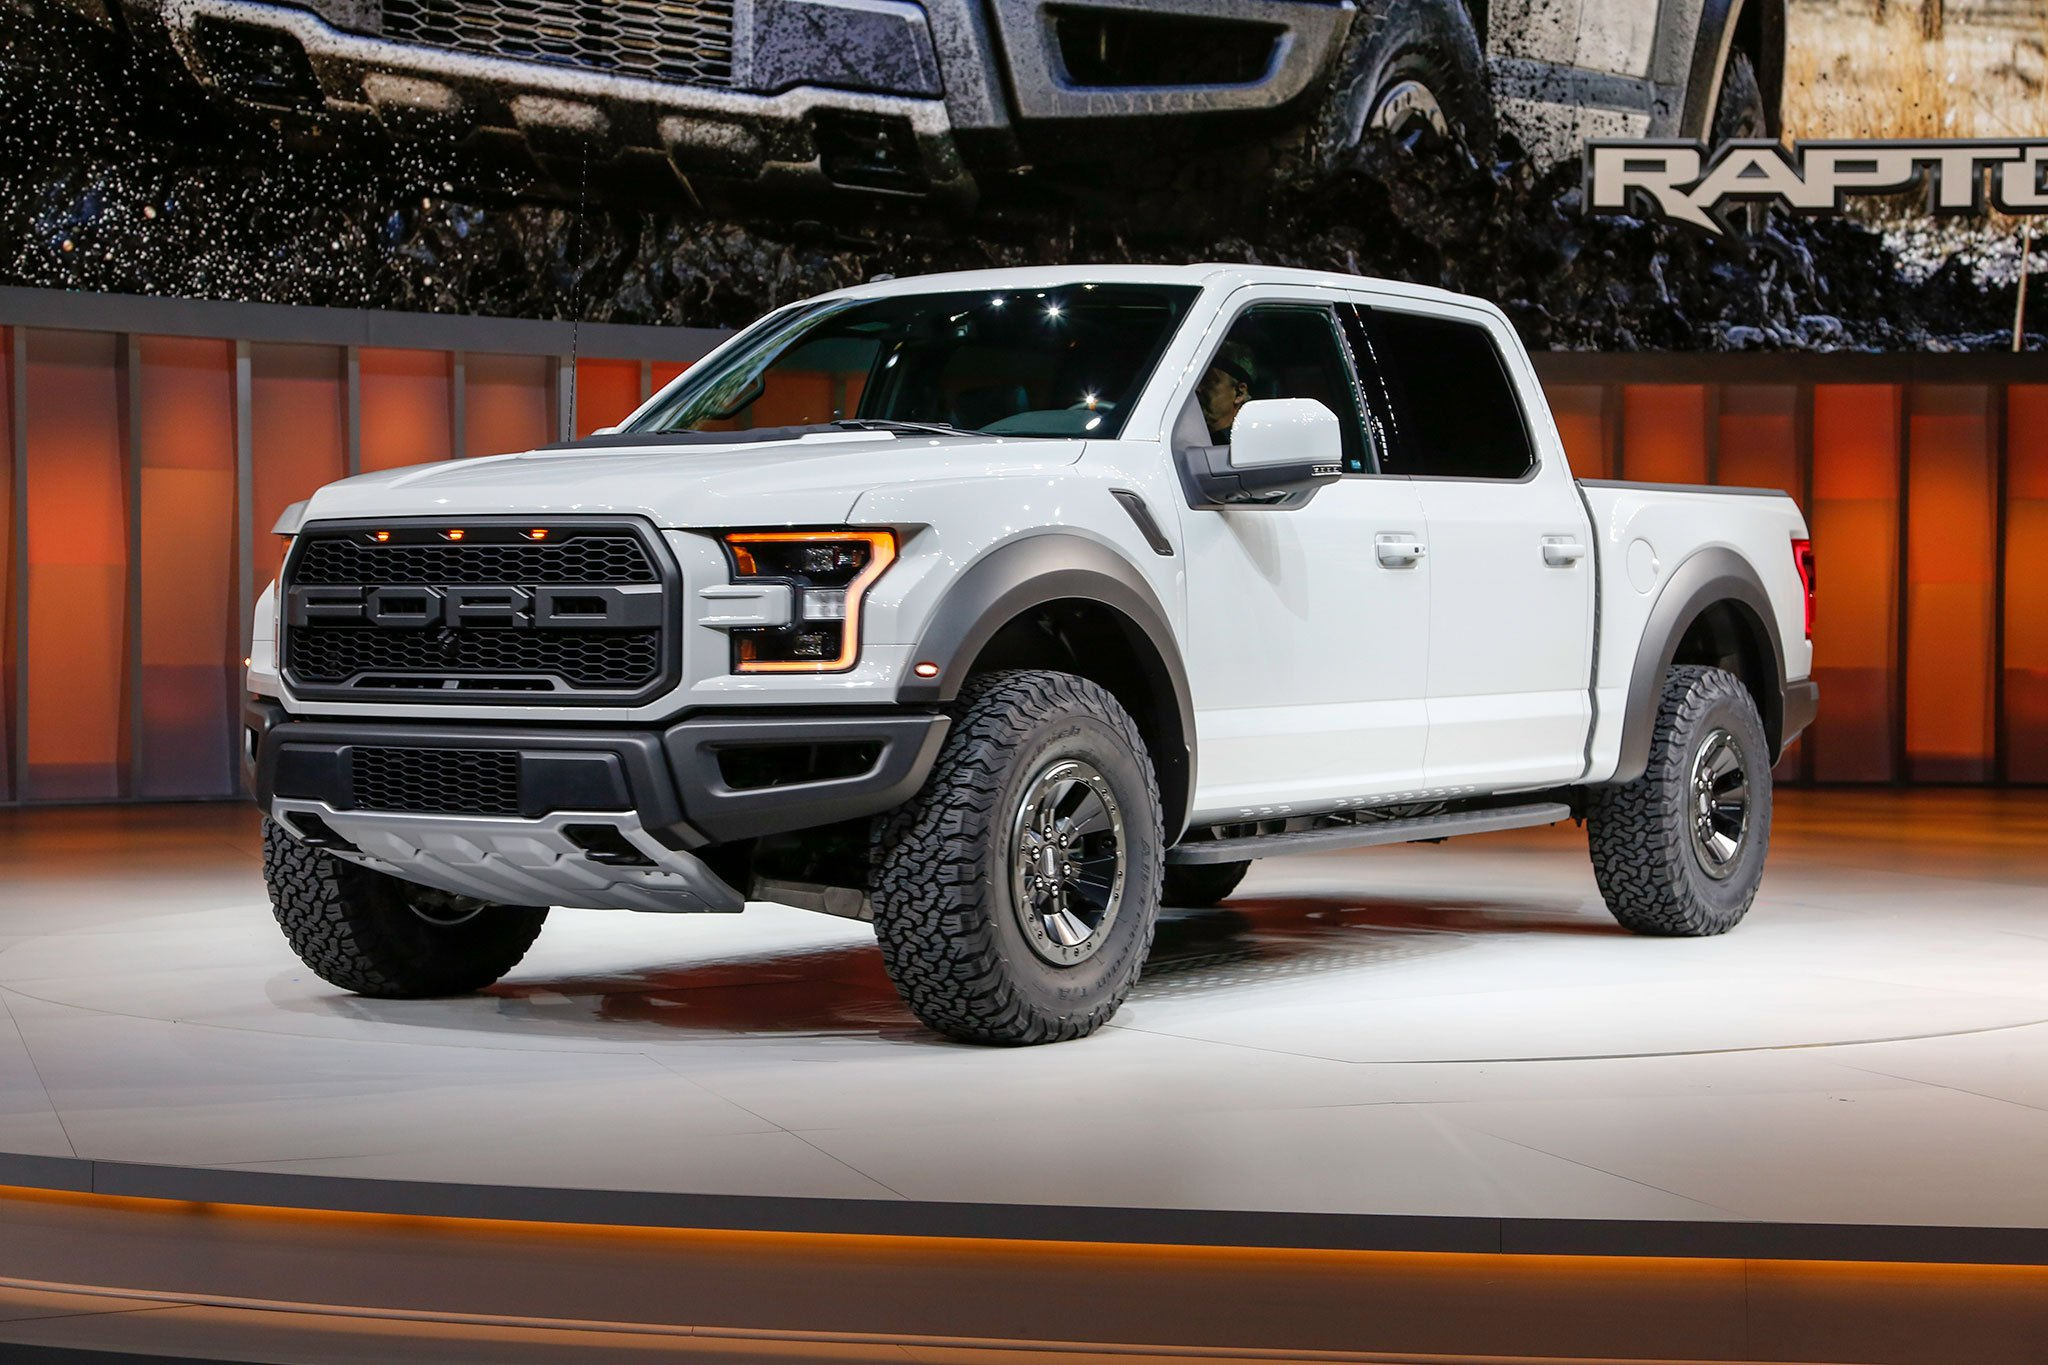 ford raptor price - HD 2048×1365